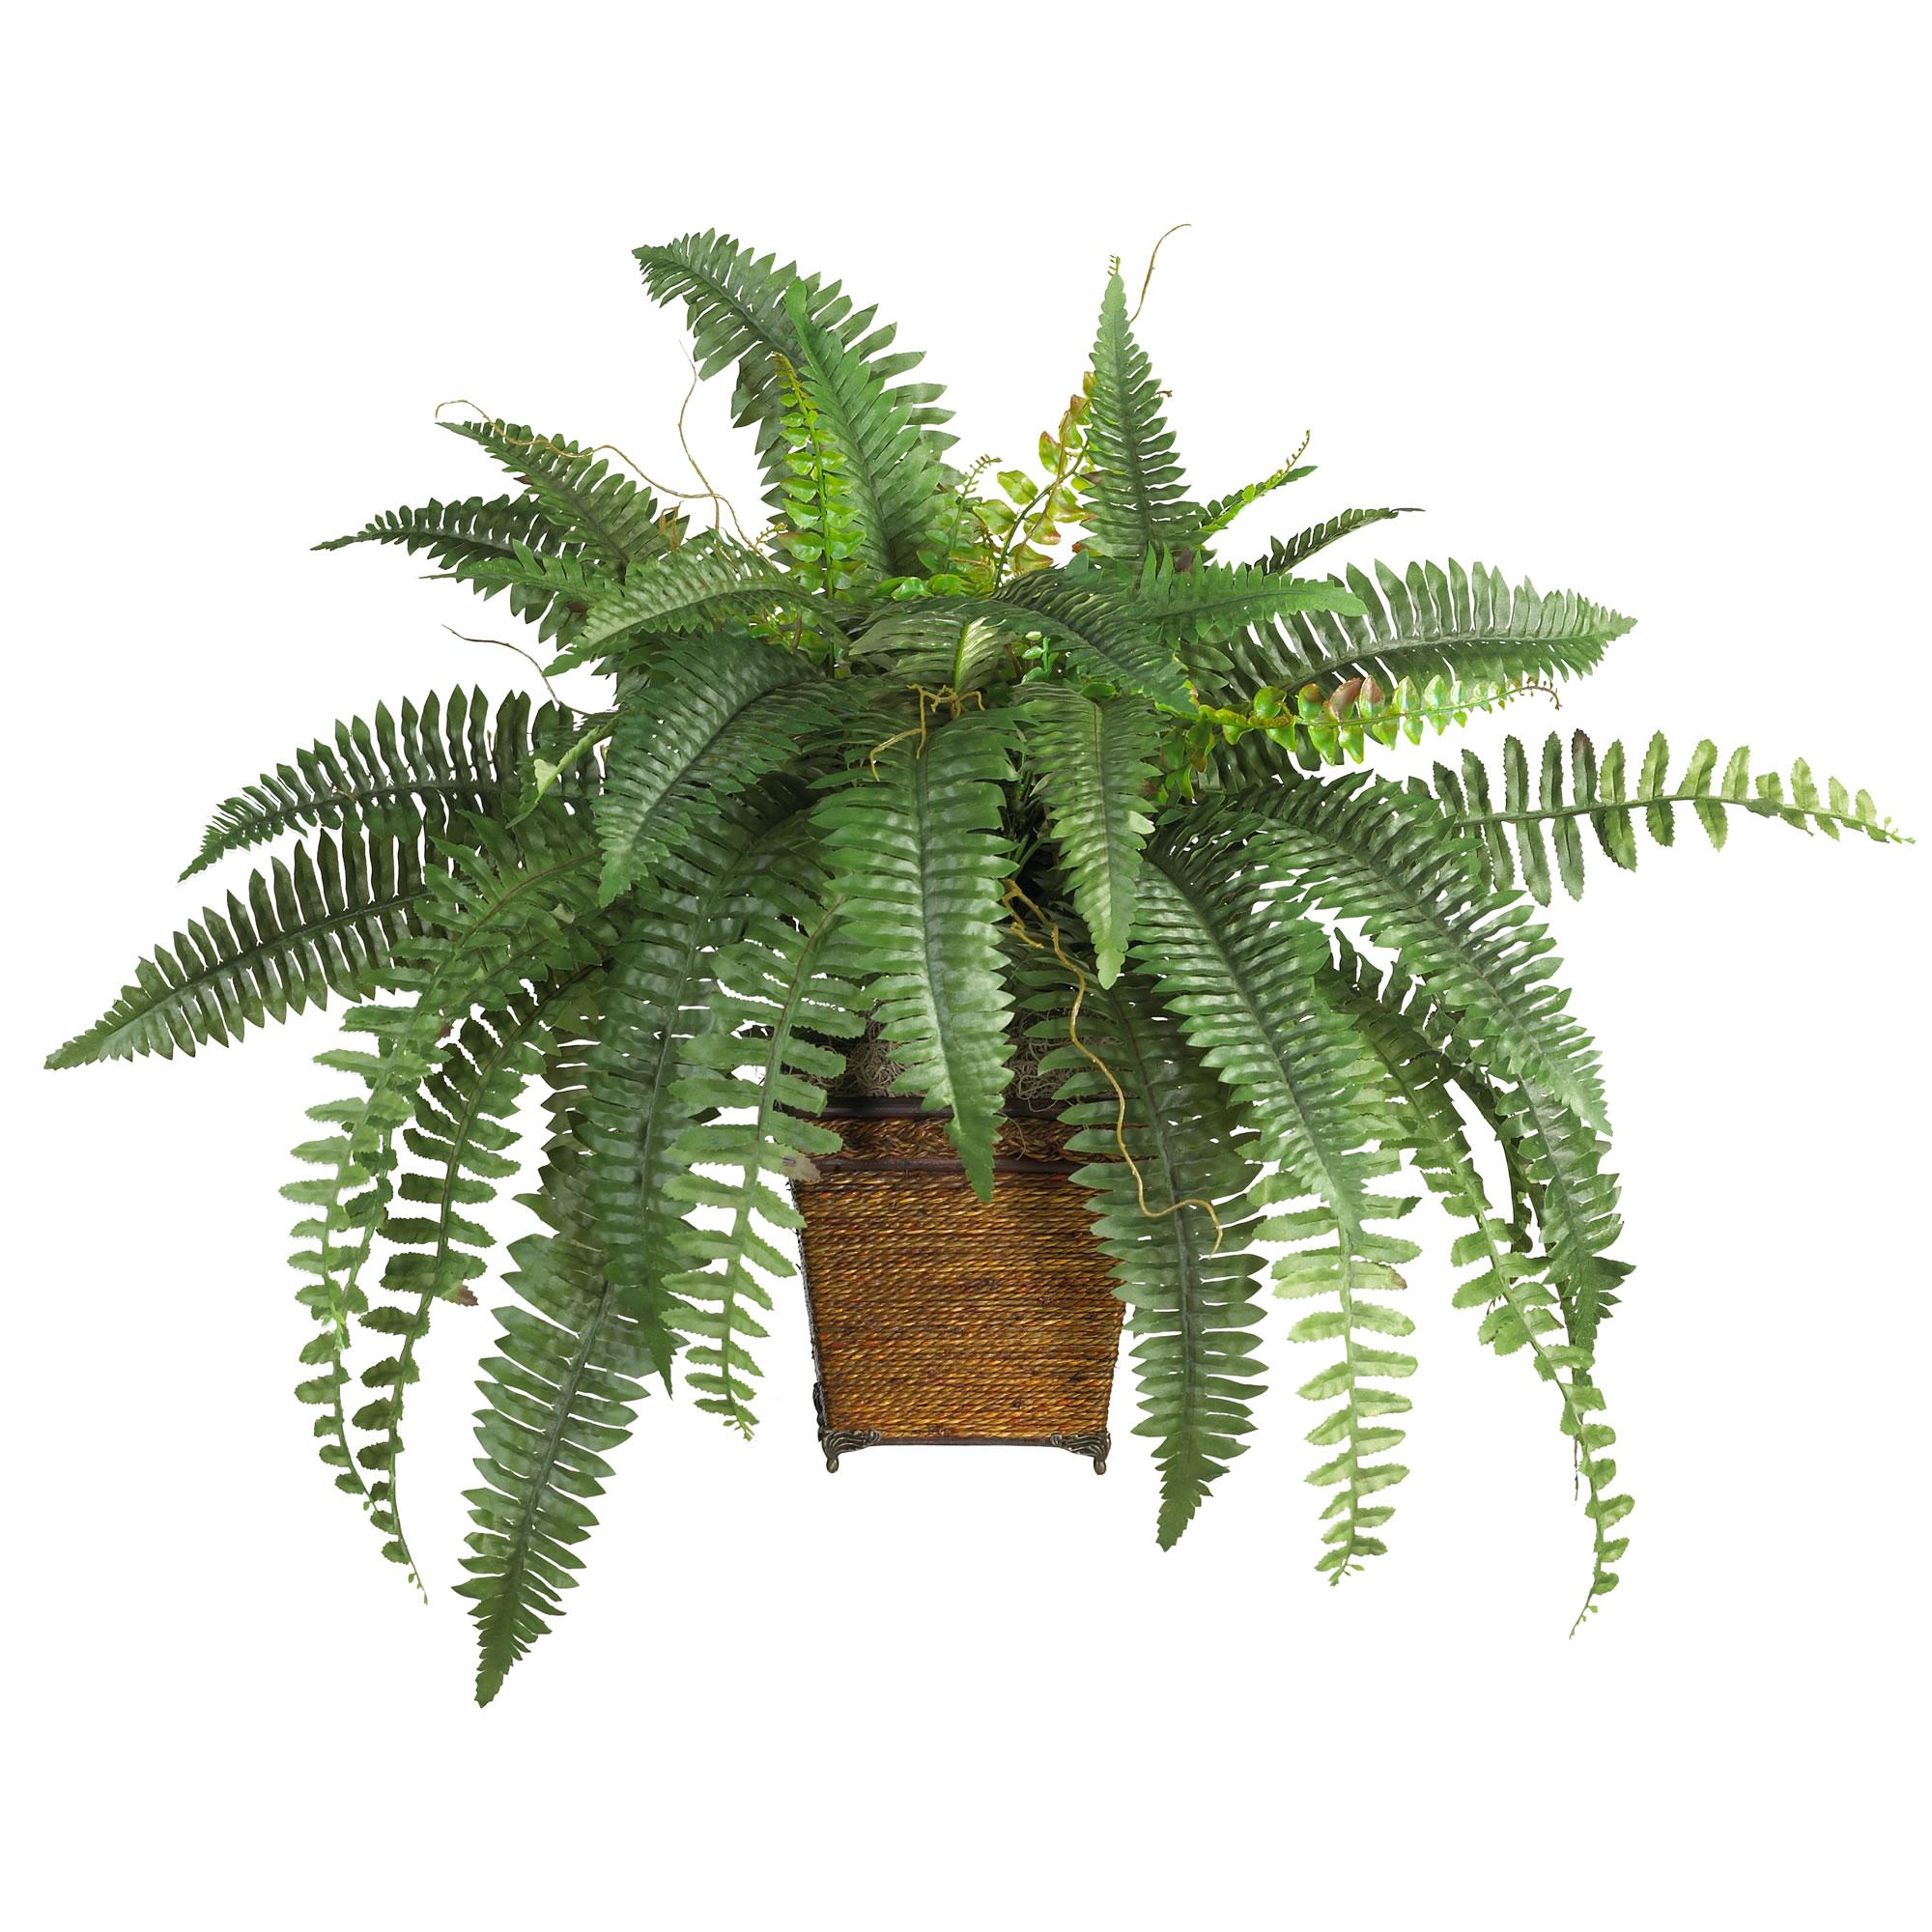 Amazon.com: Nearly Natural 6549 Boston Fern with Wicker ...